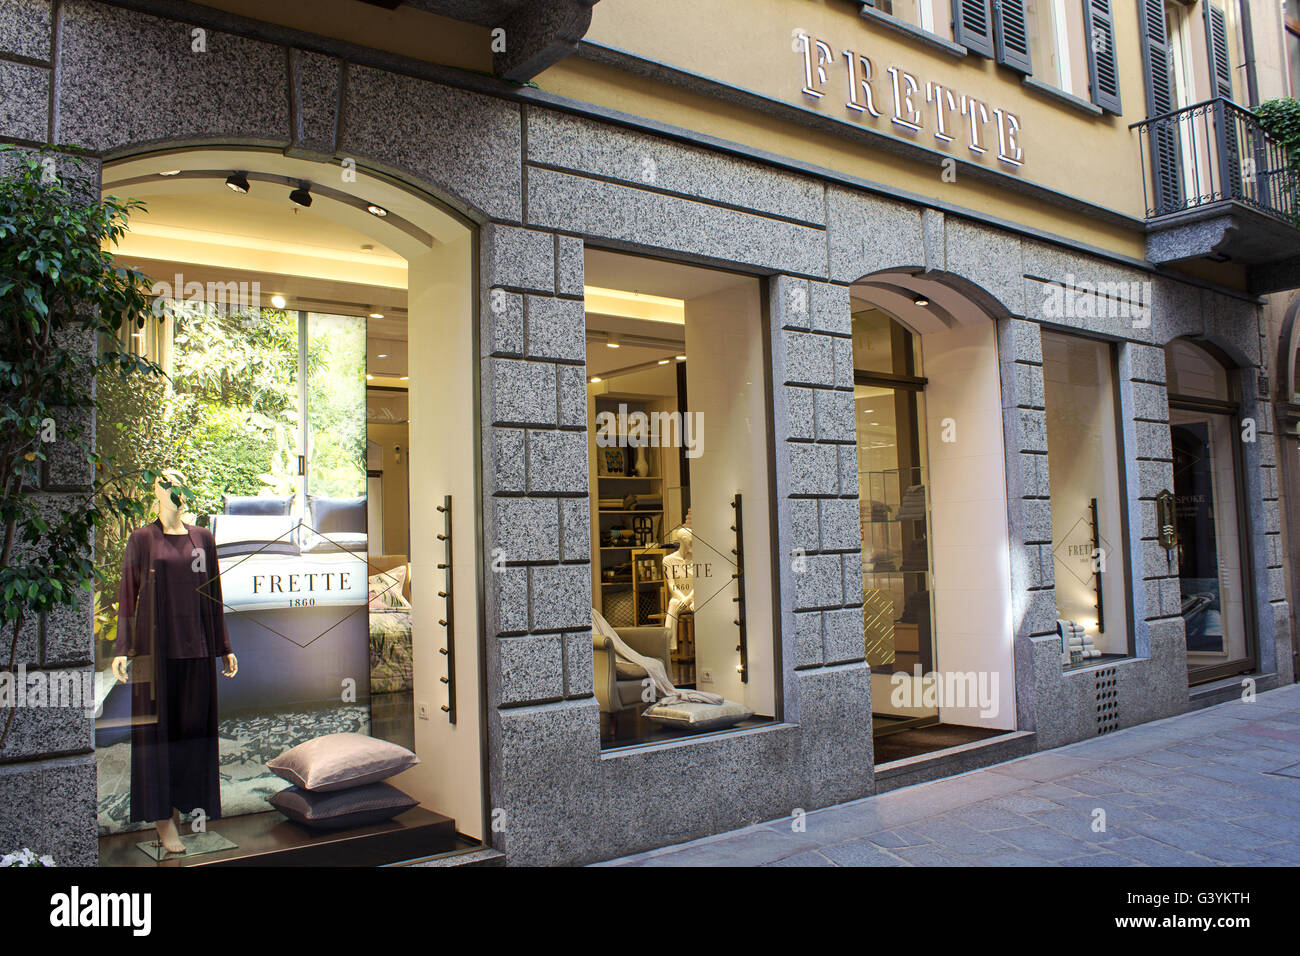 frette high fashion and home design shopping windows in